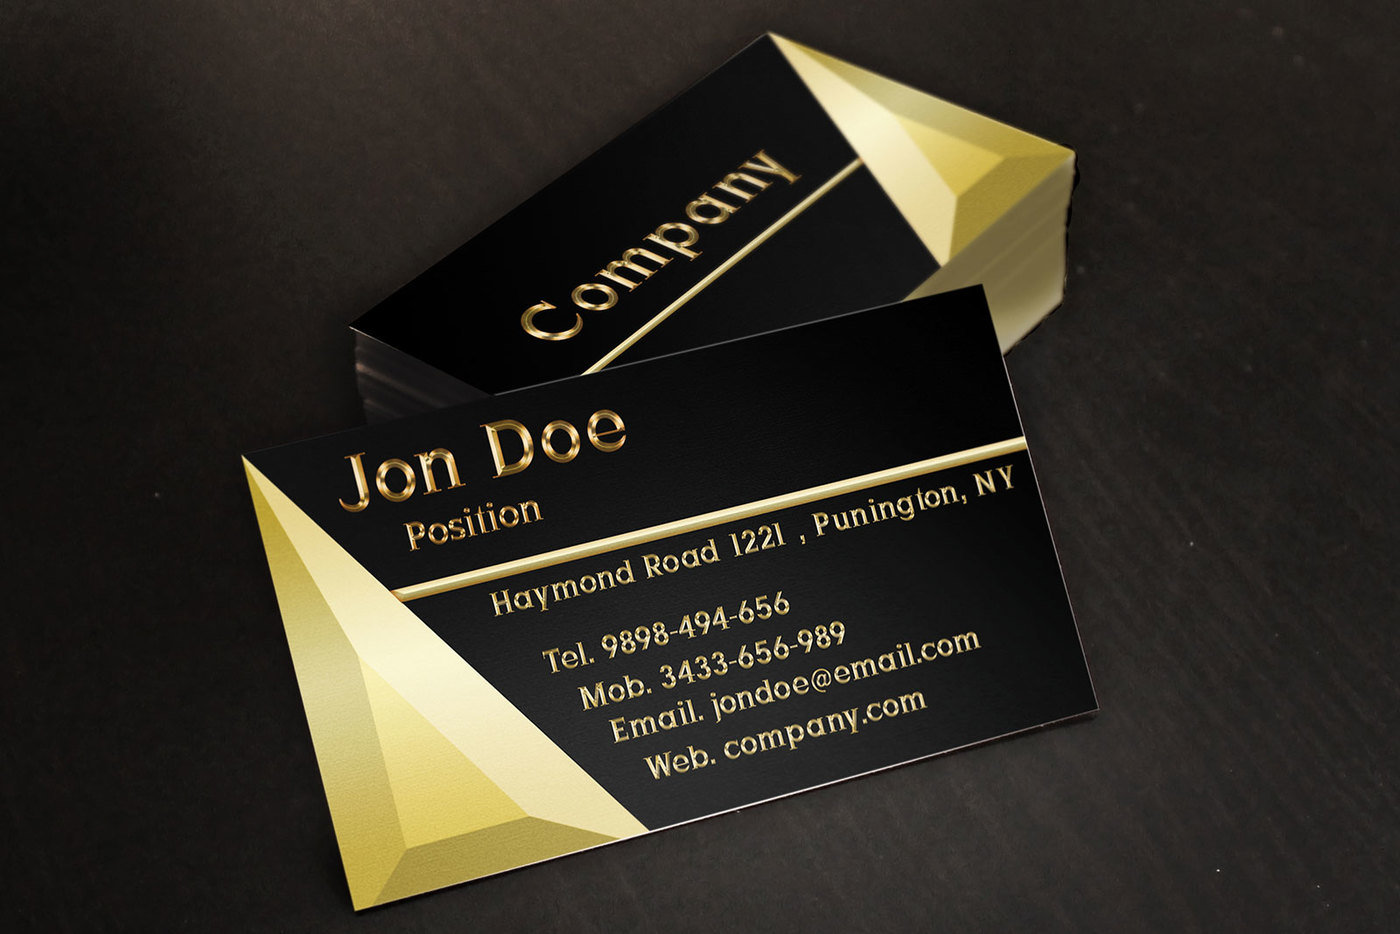 Black and gold jewelry store business card template by borce black and gold jewelry store business card template by borce markoski at coroflot friedricerecipe Choice Image